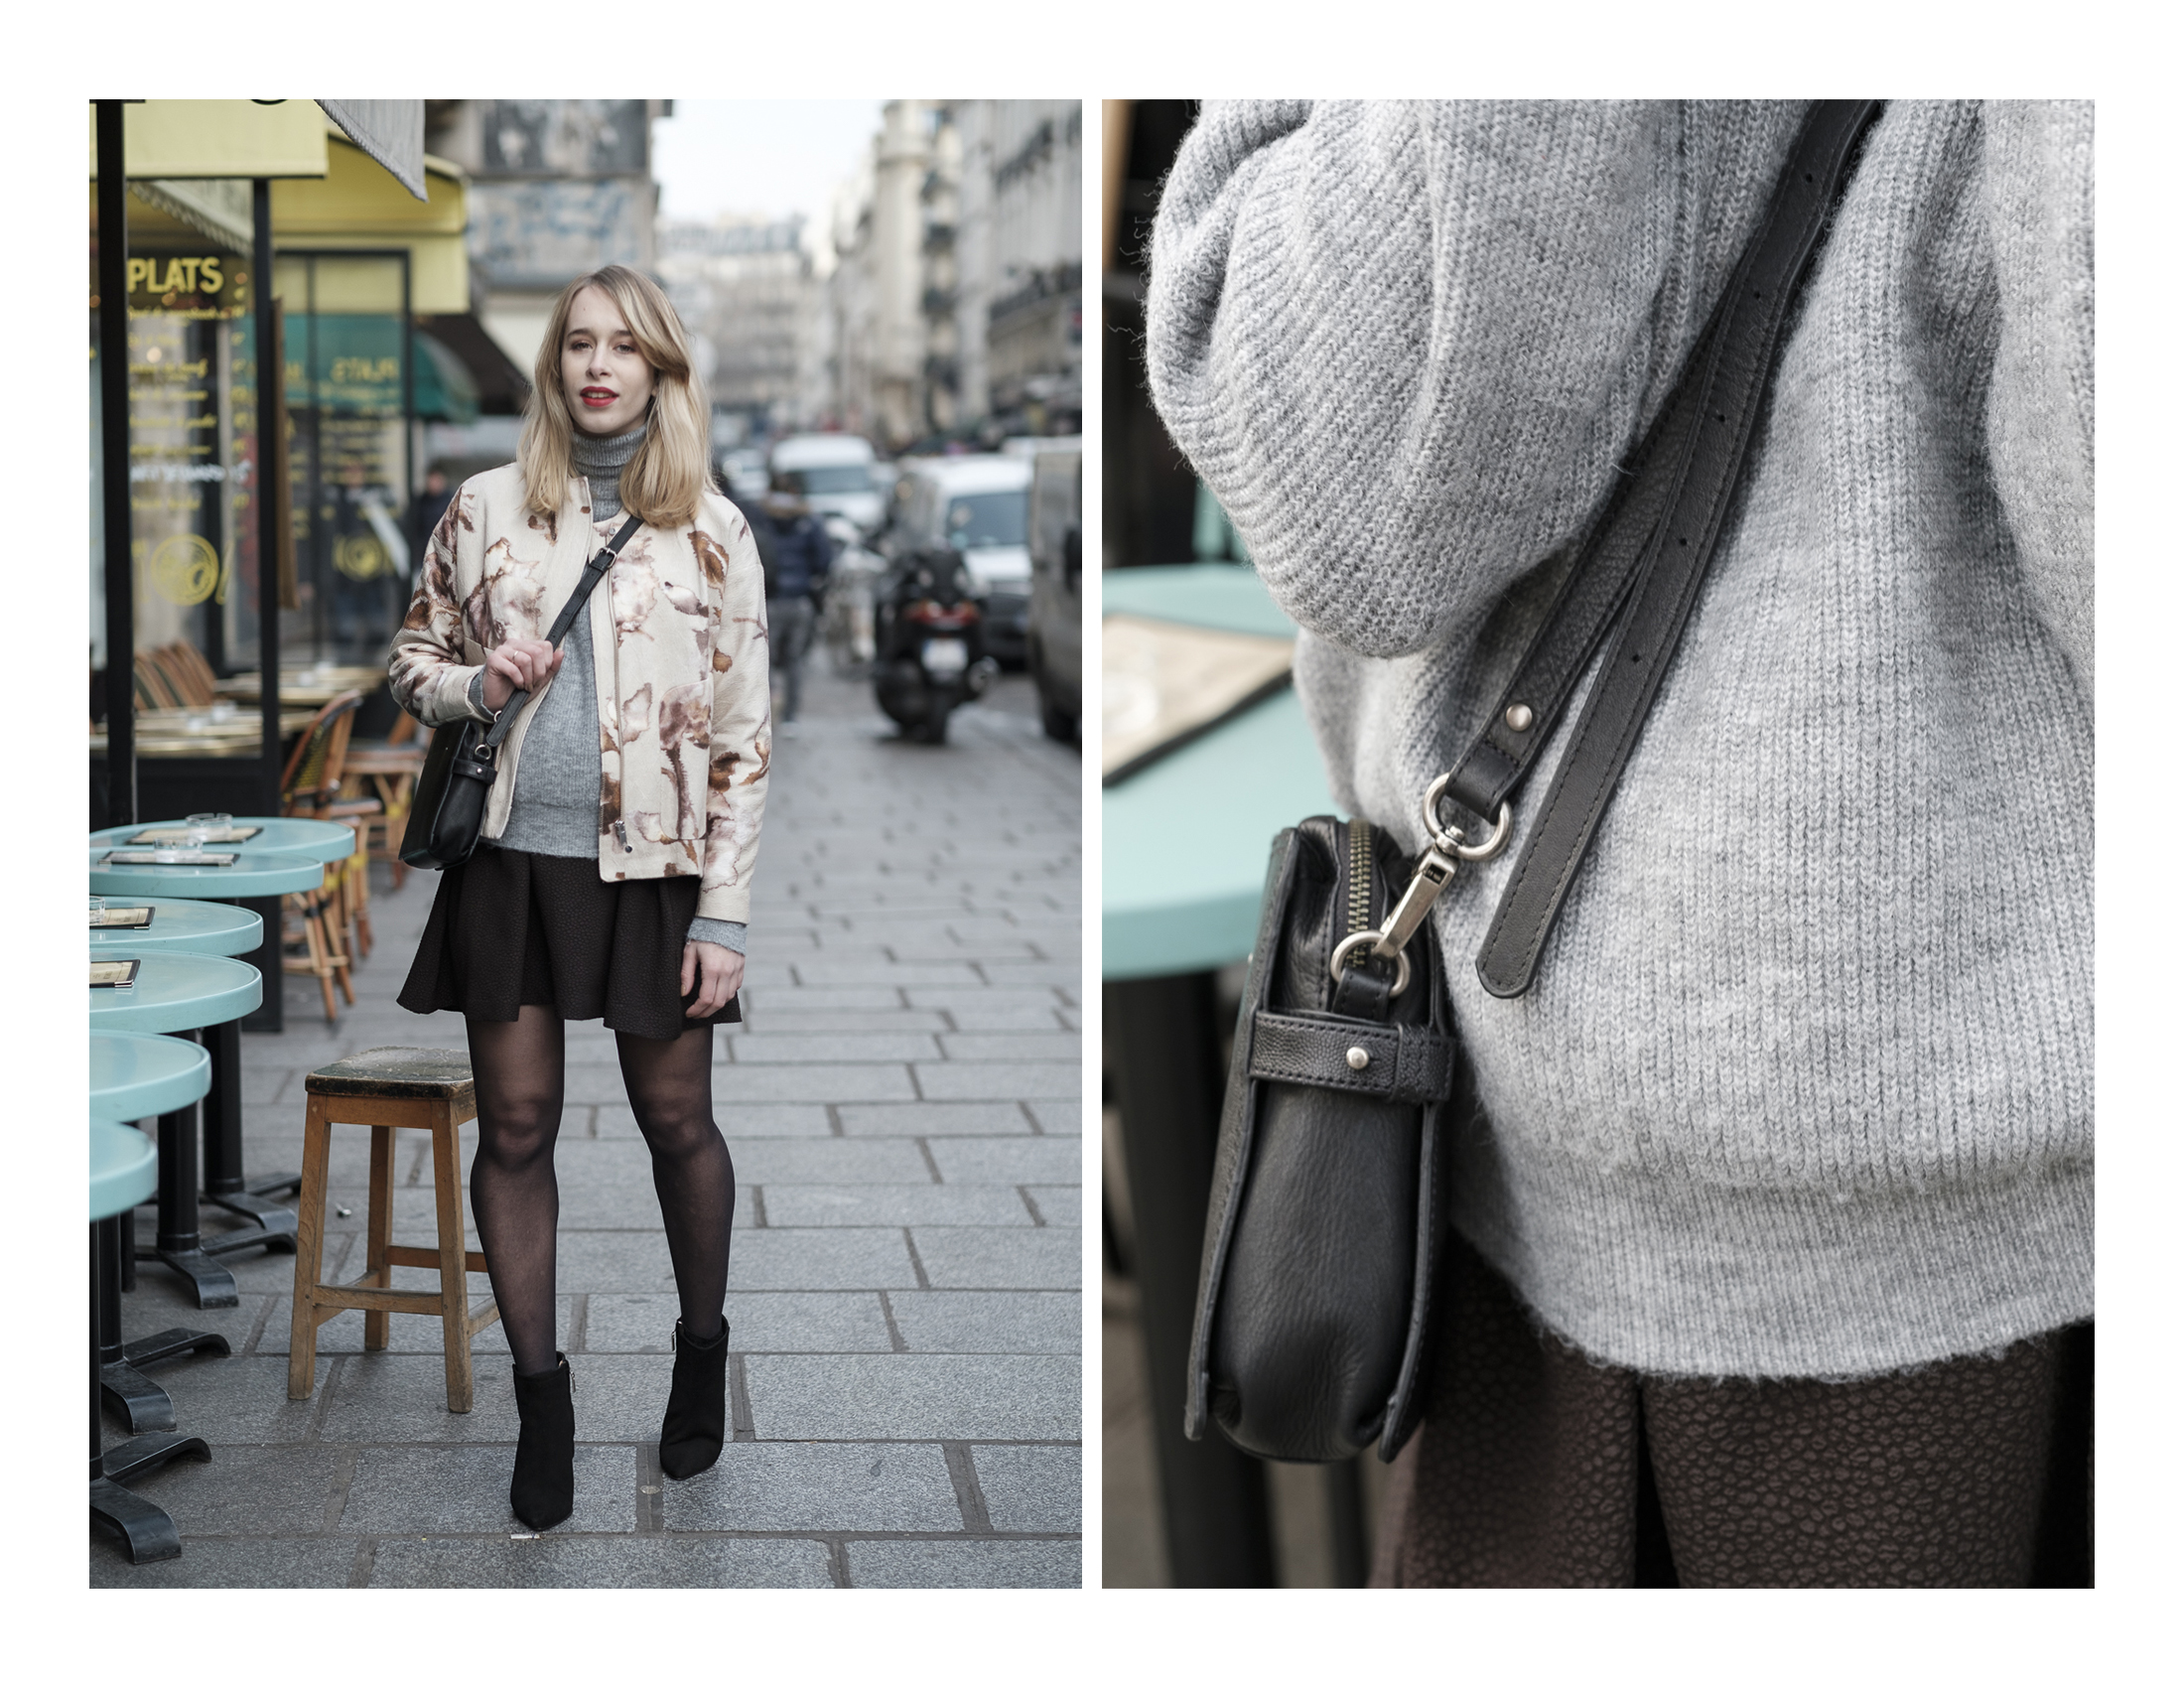 streetstyle-pregnant-woman-blonde-paris